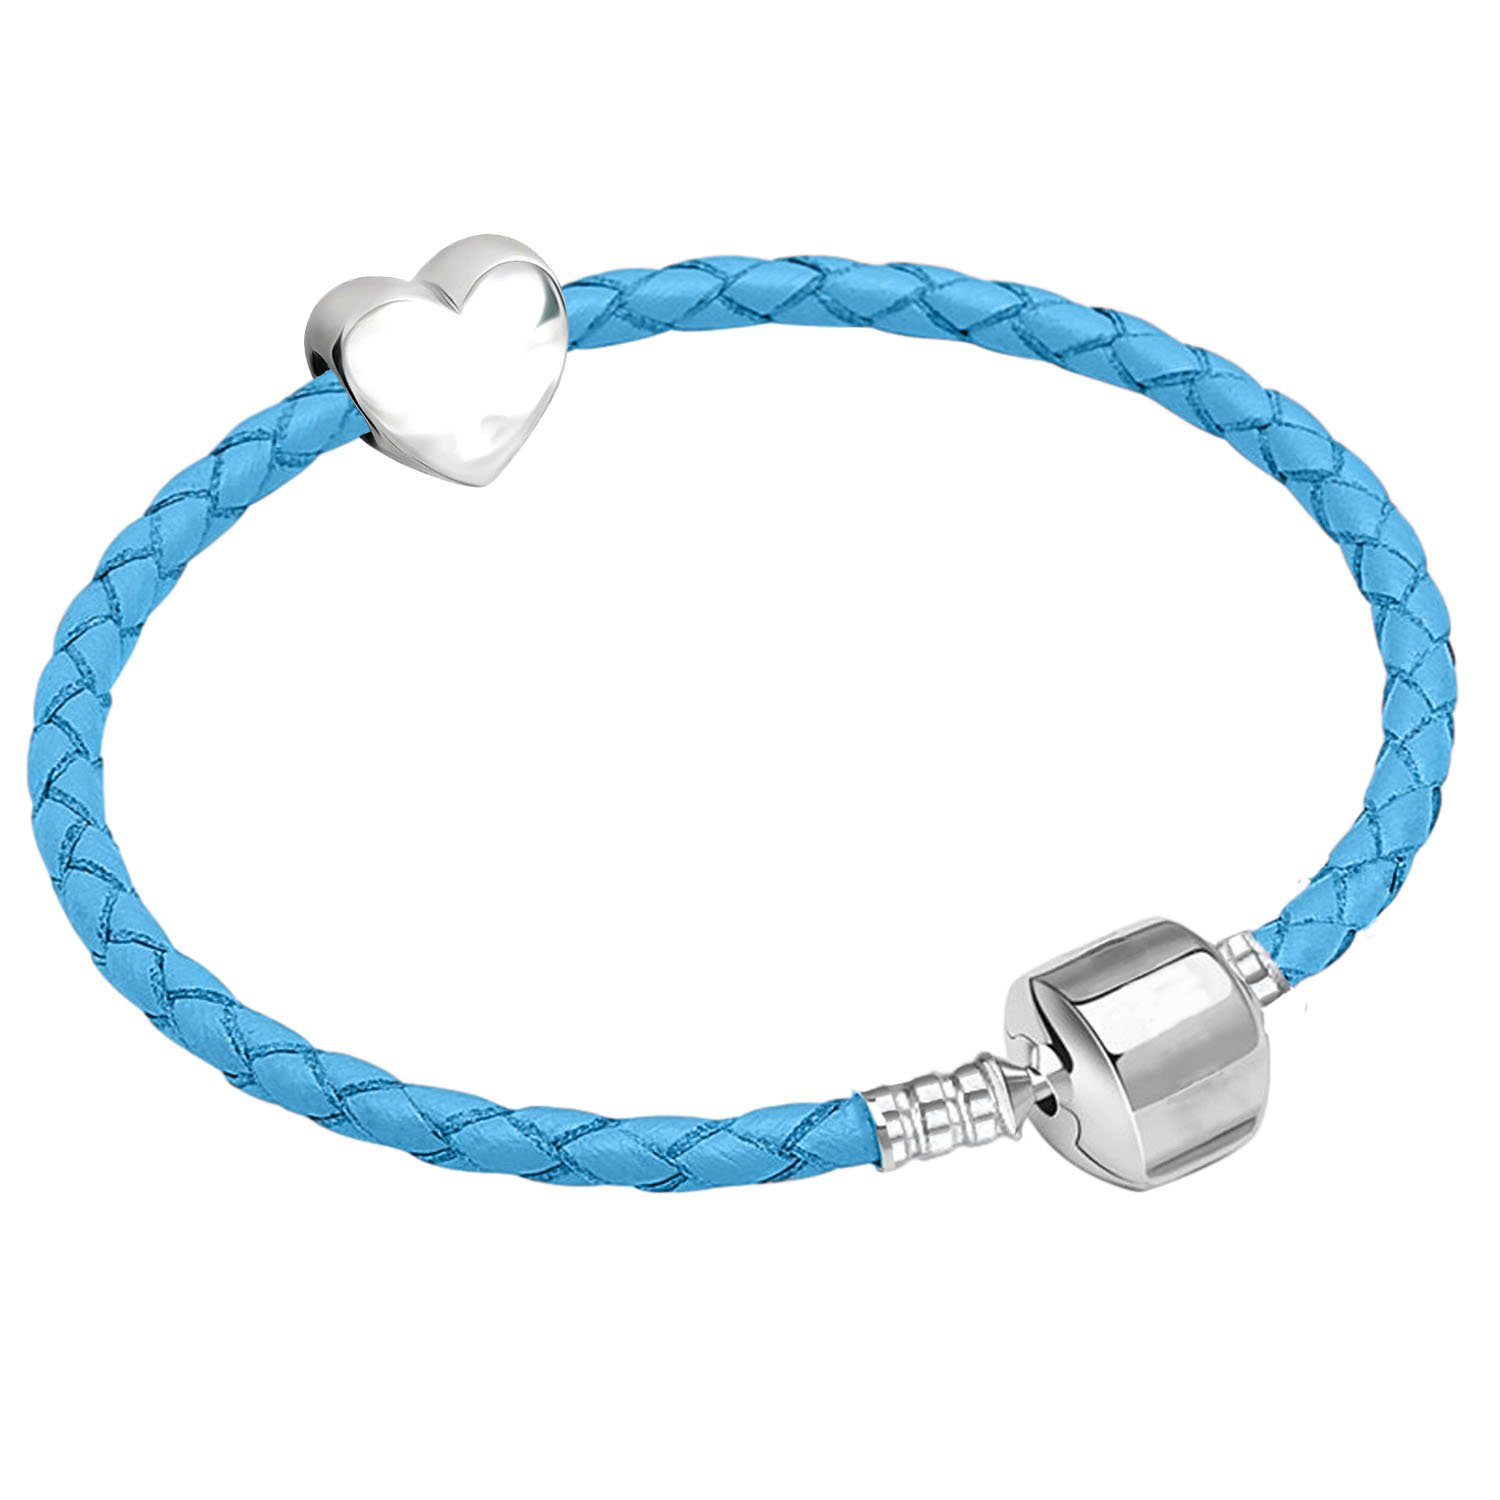 15cm Young Girls Blue Leather Starter Charm Bracelet with Silver Heart and Gift Box for Age 3 - 5 Years Charm Buddy Charm Buddy ® CBY: #15cm Blue Leather